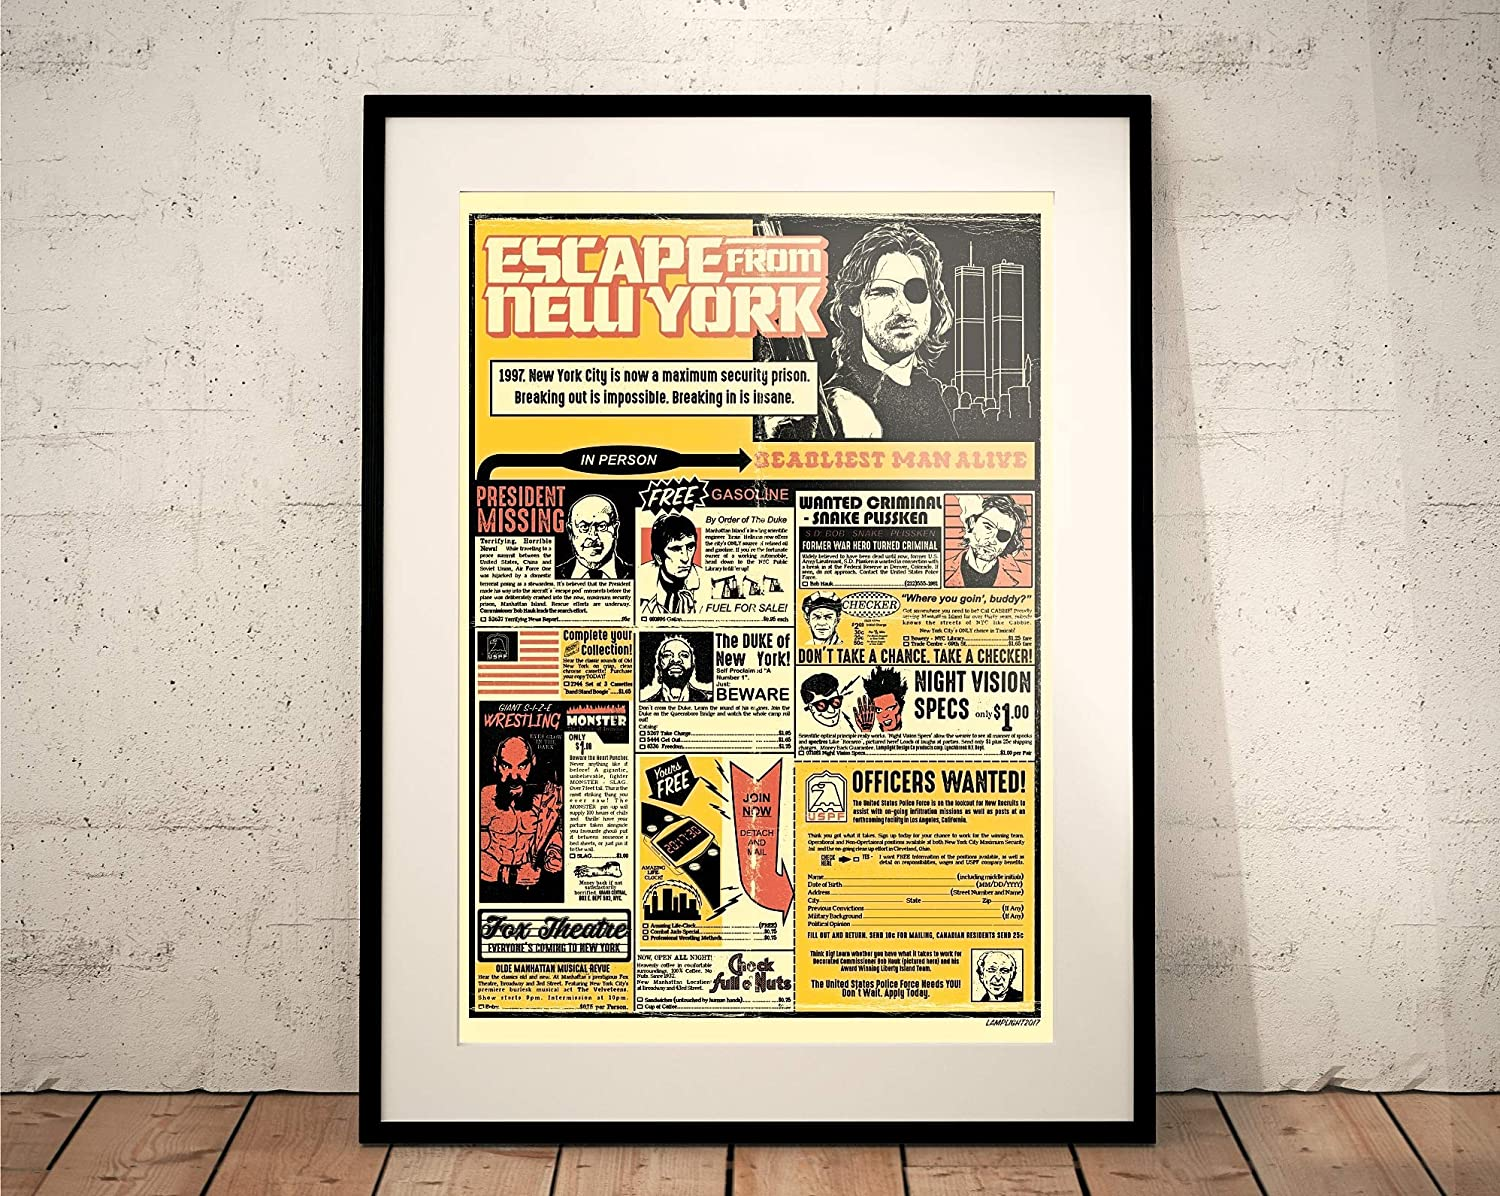 Escape from New York. Limited Edition Print. John Carpenter, Snake Plissken (Prints/Posters)